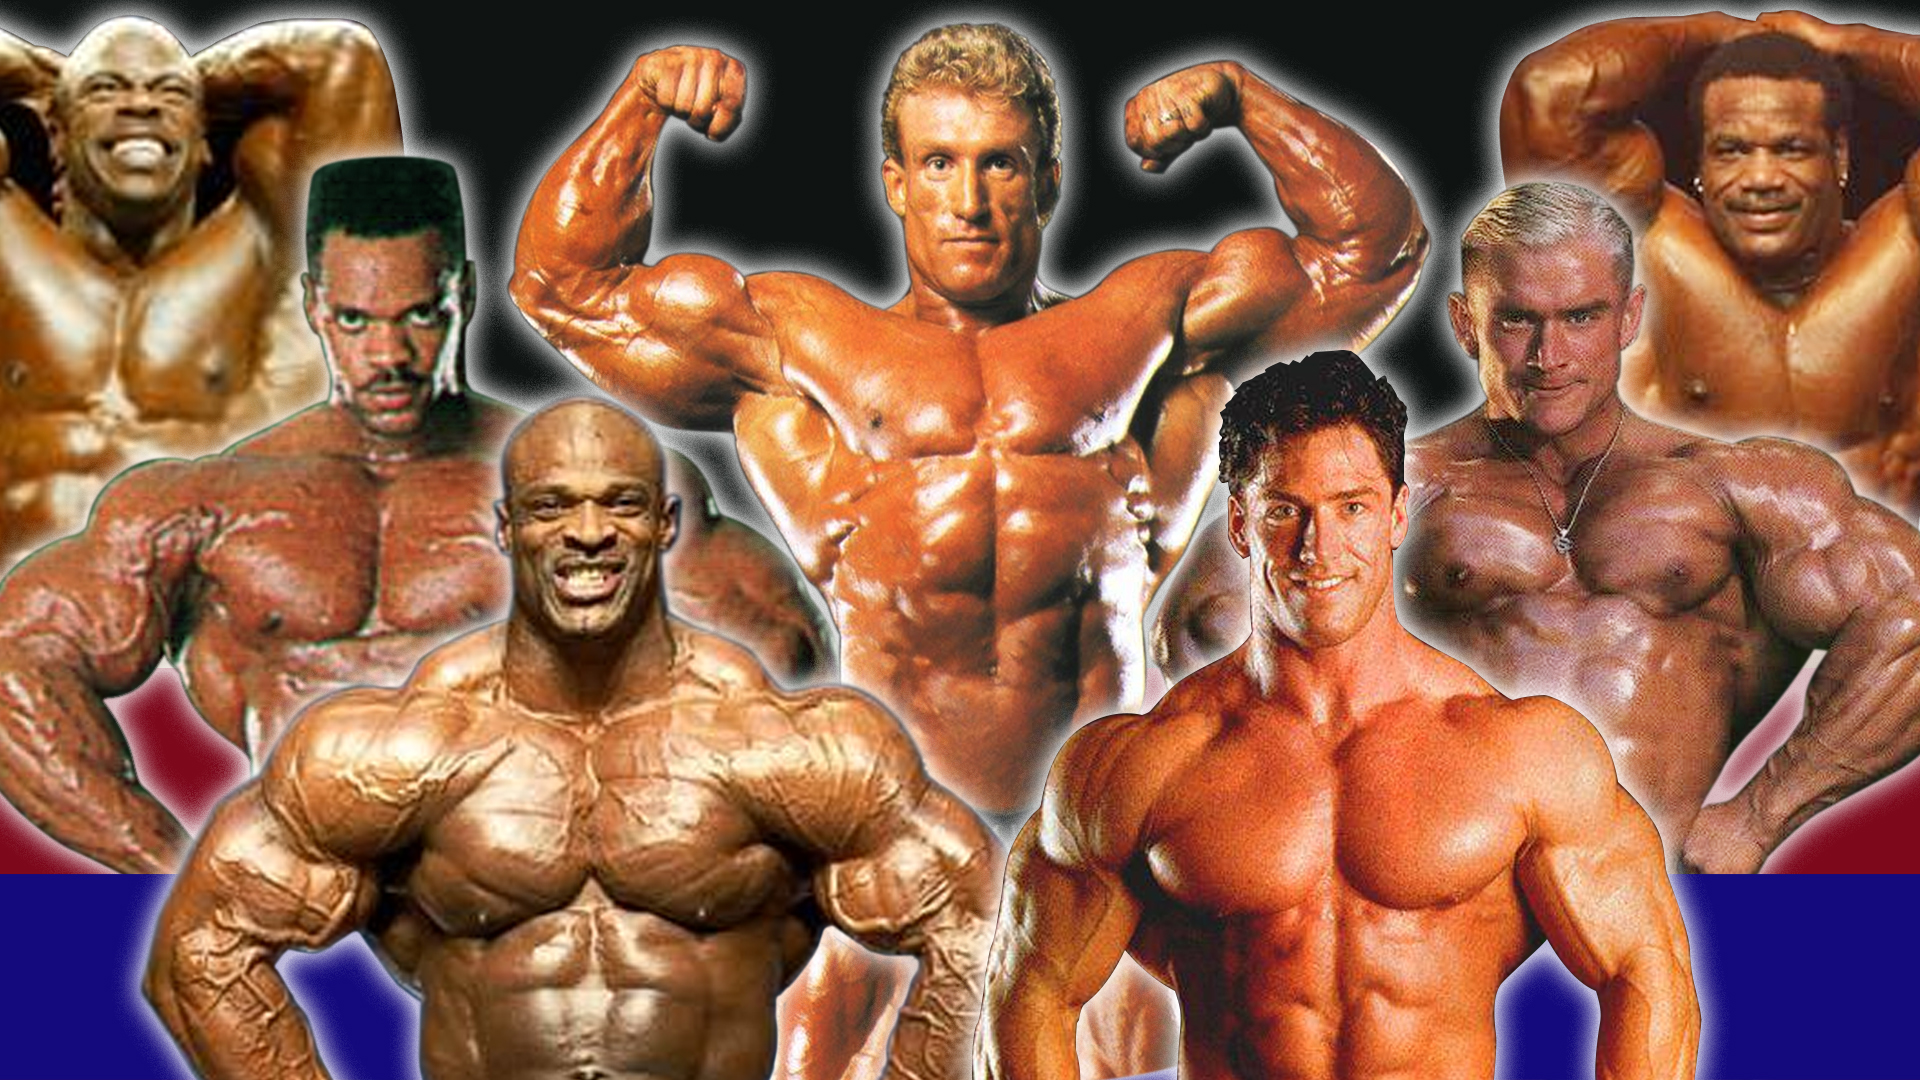 IFBB Pros in the 90s featuring Dennis Newman, Chris Cormier, Aaron Baker, Paul Dillet, Lee Priest, Ronnie Coleman and Dorian Yates